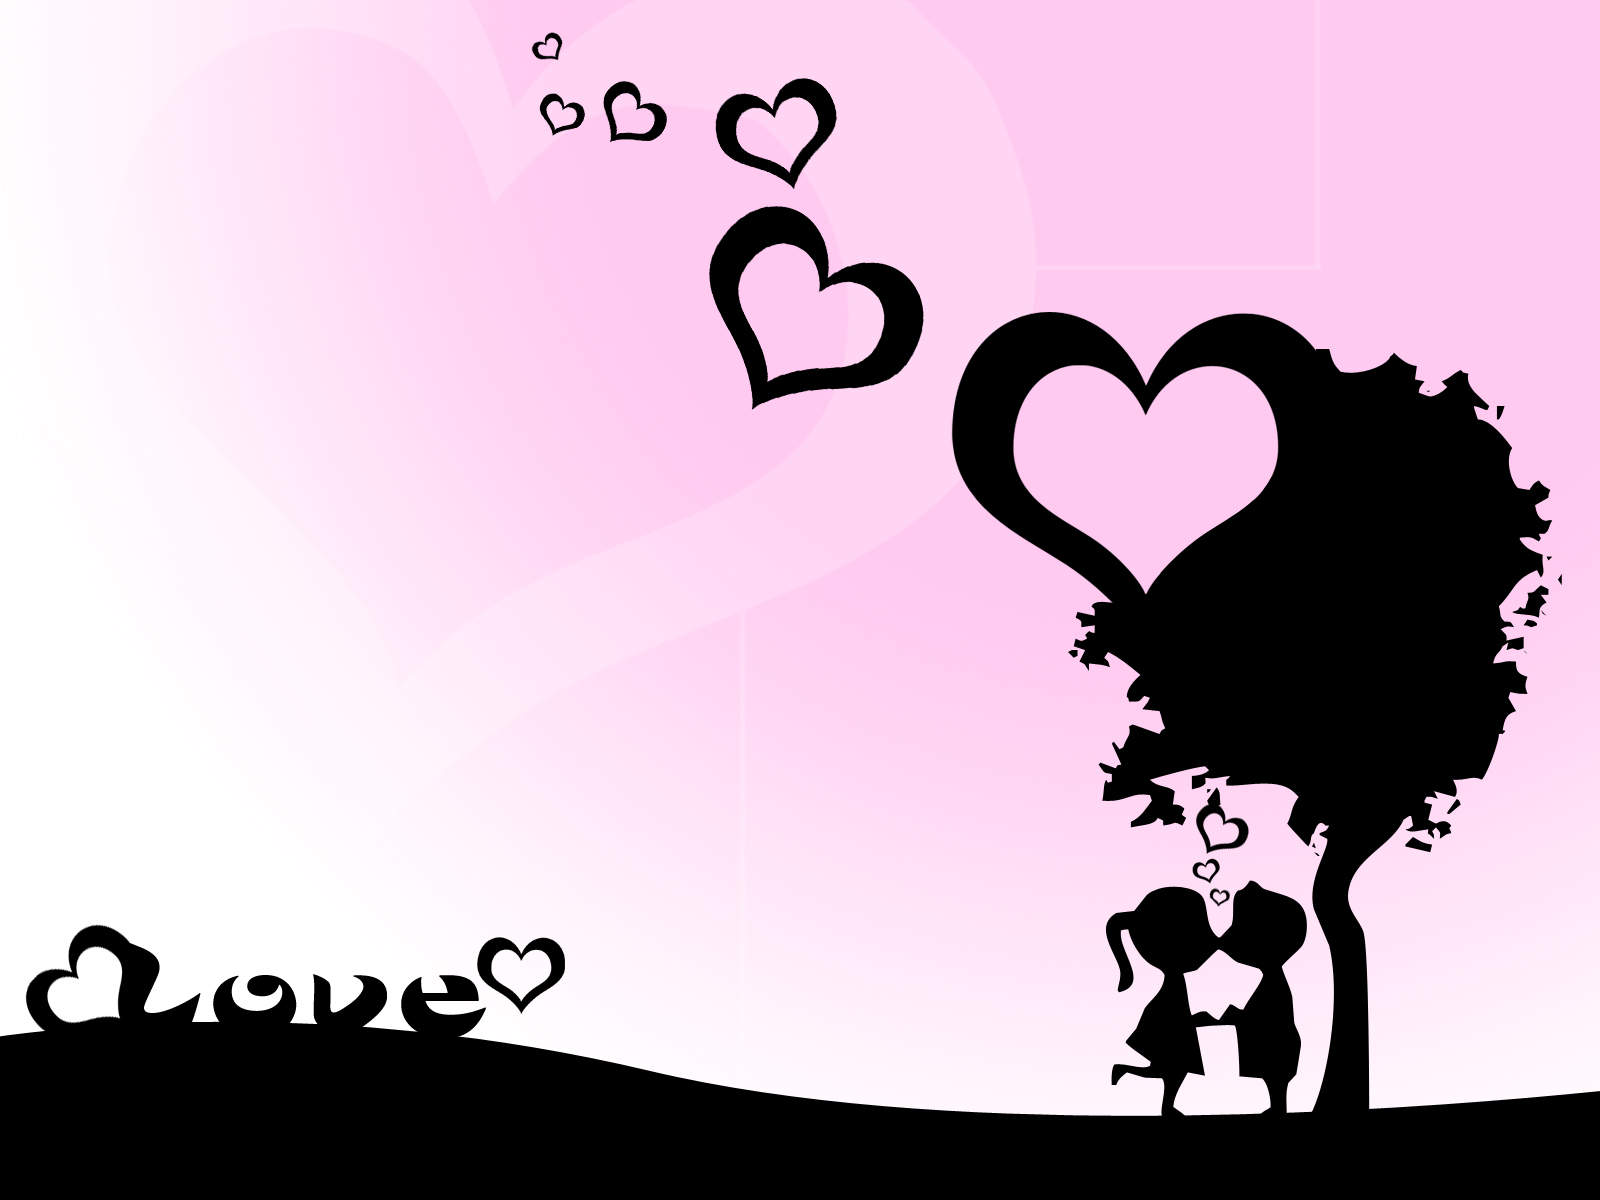 Love Wallpaper In Pc : Love computer Wallpapers - Wallpaper, High Definition, High Quality, Widescreen